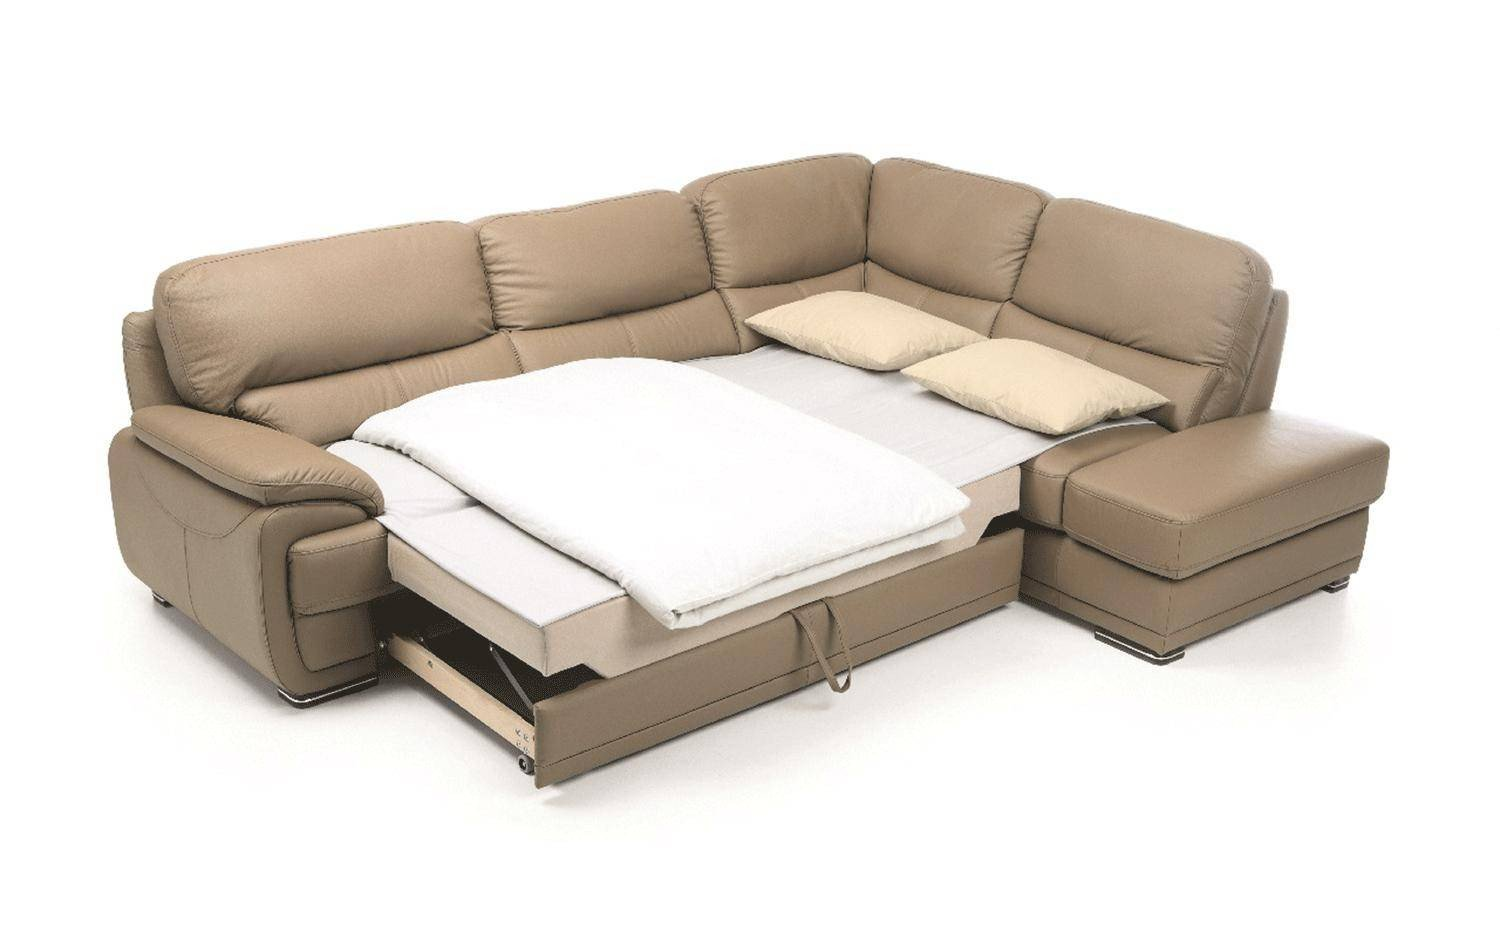 Sofa Bed for Bedroom Inspirational Chic Beige Full Leather Sectional sofa Bed W Storage Modern